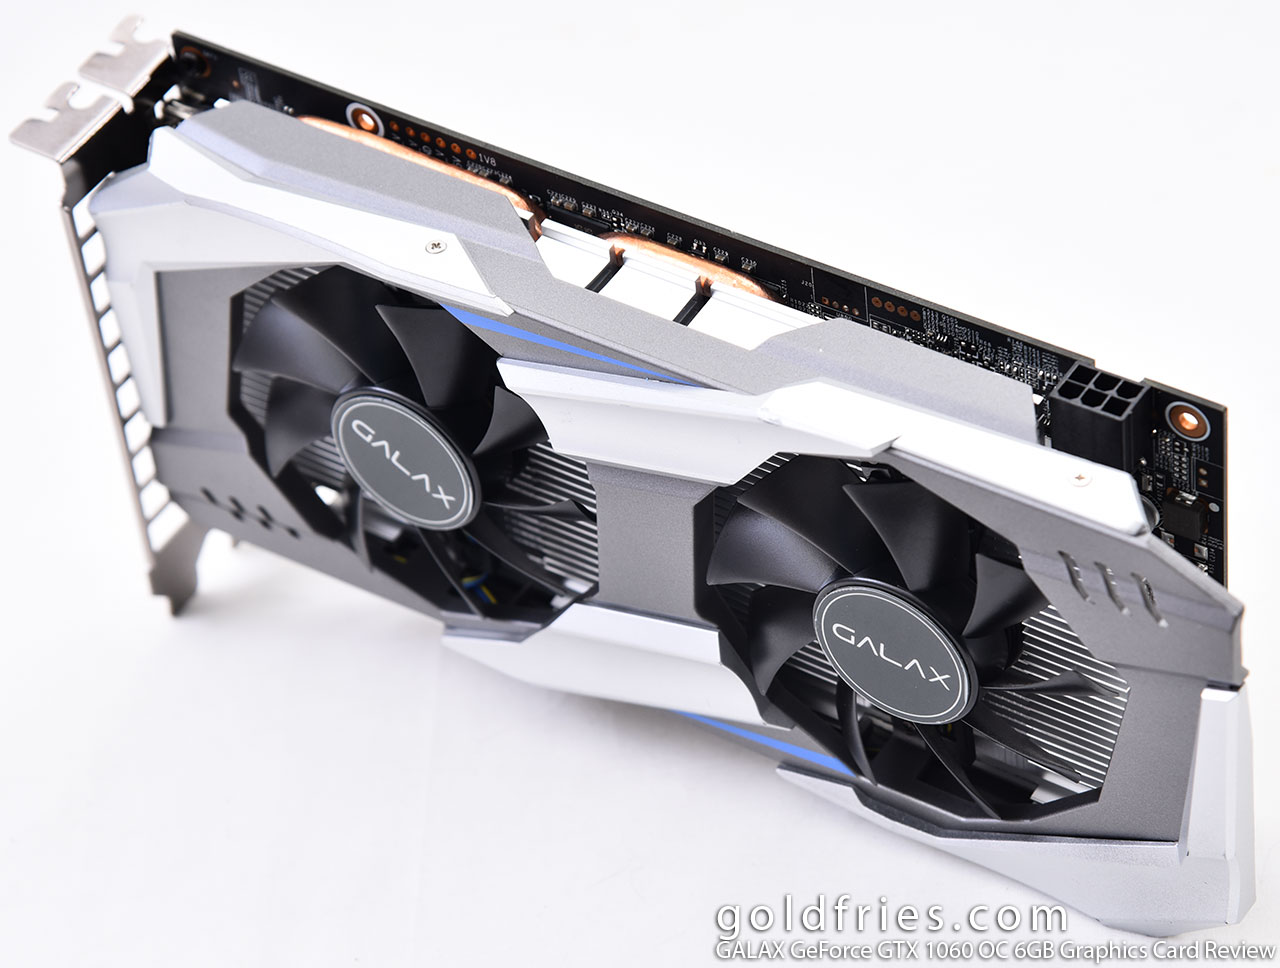 GALAX GeForce GTX 1060 OC 6GBGraphics Card Review